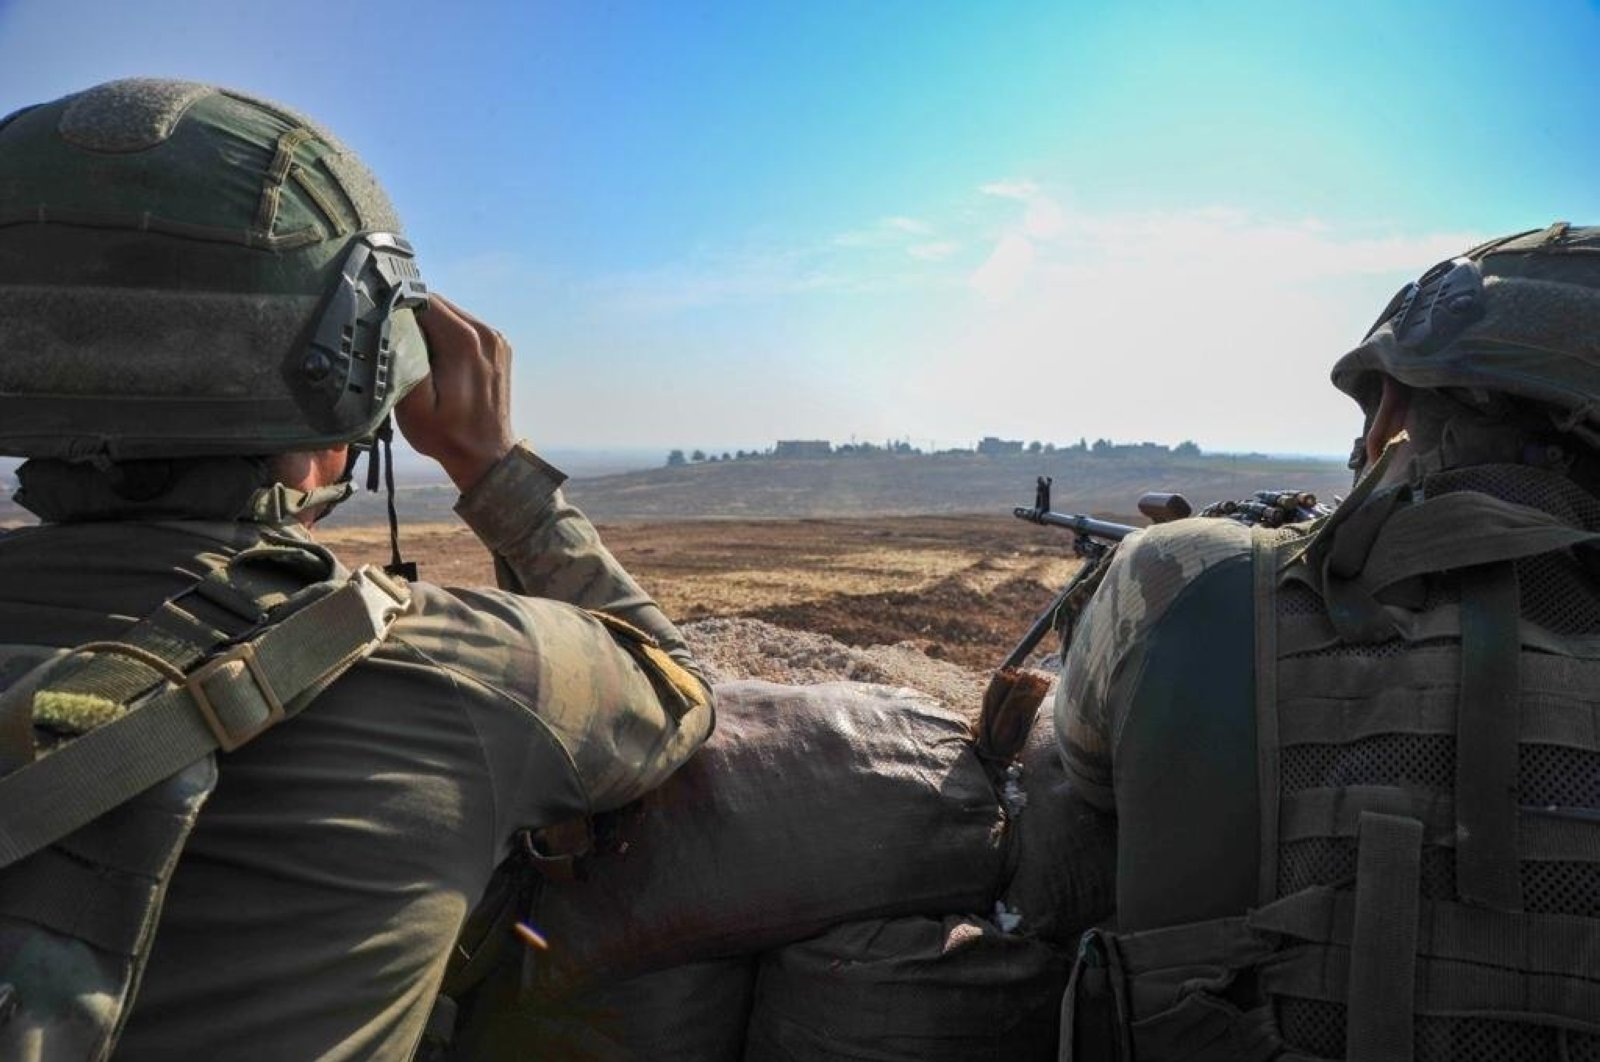 Turkish security forces have been carrying out a series of successful counterterrorism operations in eastern parts of the country against the PKK terrorists. (DHA)